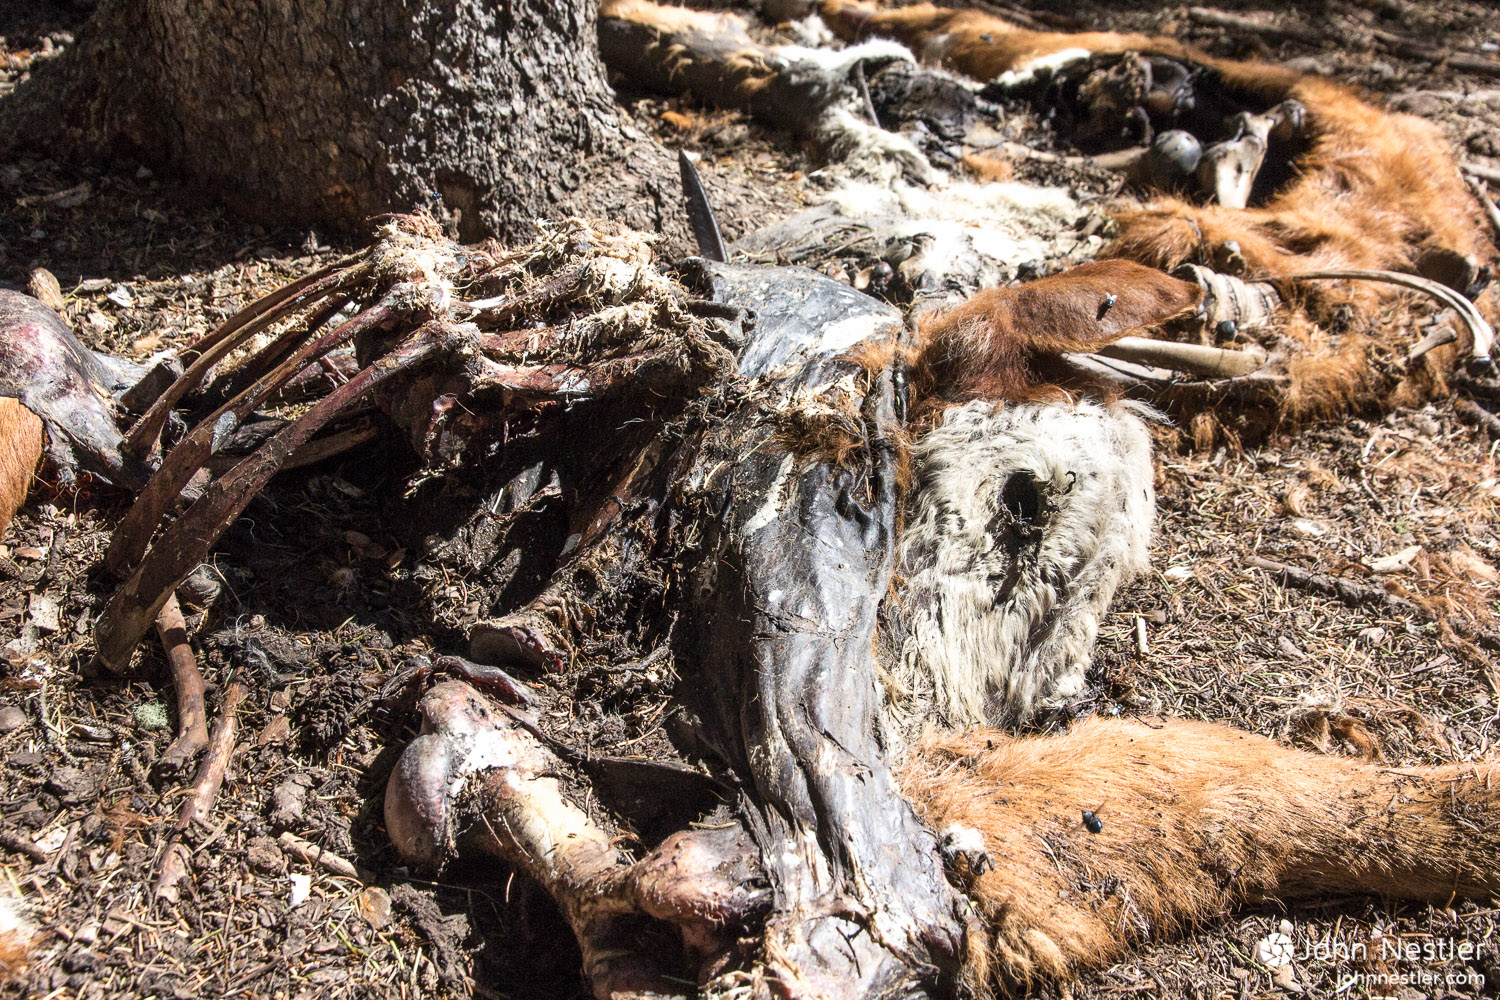 A stark reminder that nature is always a cycle of life and death. Here the remains of a calf lay across the trail shortly before reaching Sargents Mesa in Segment 16.